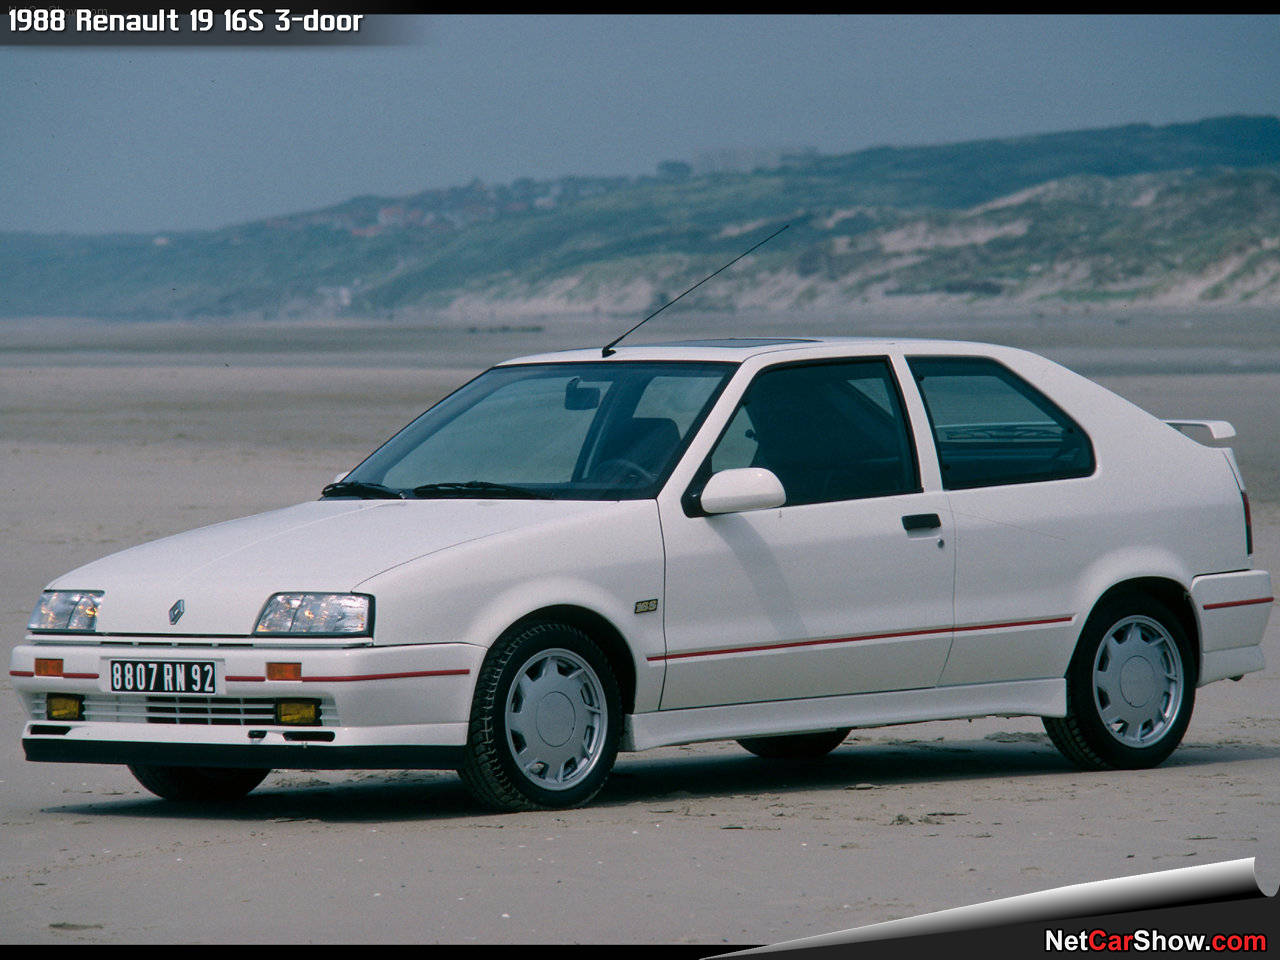 renault 19 images